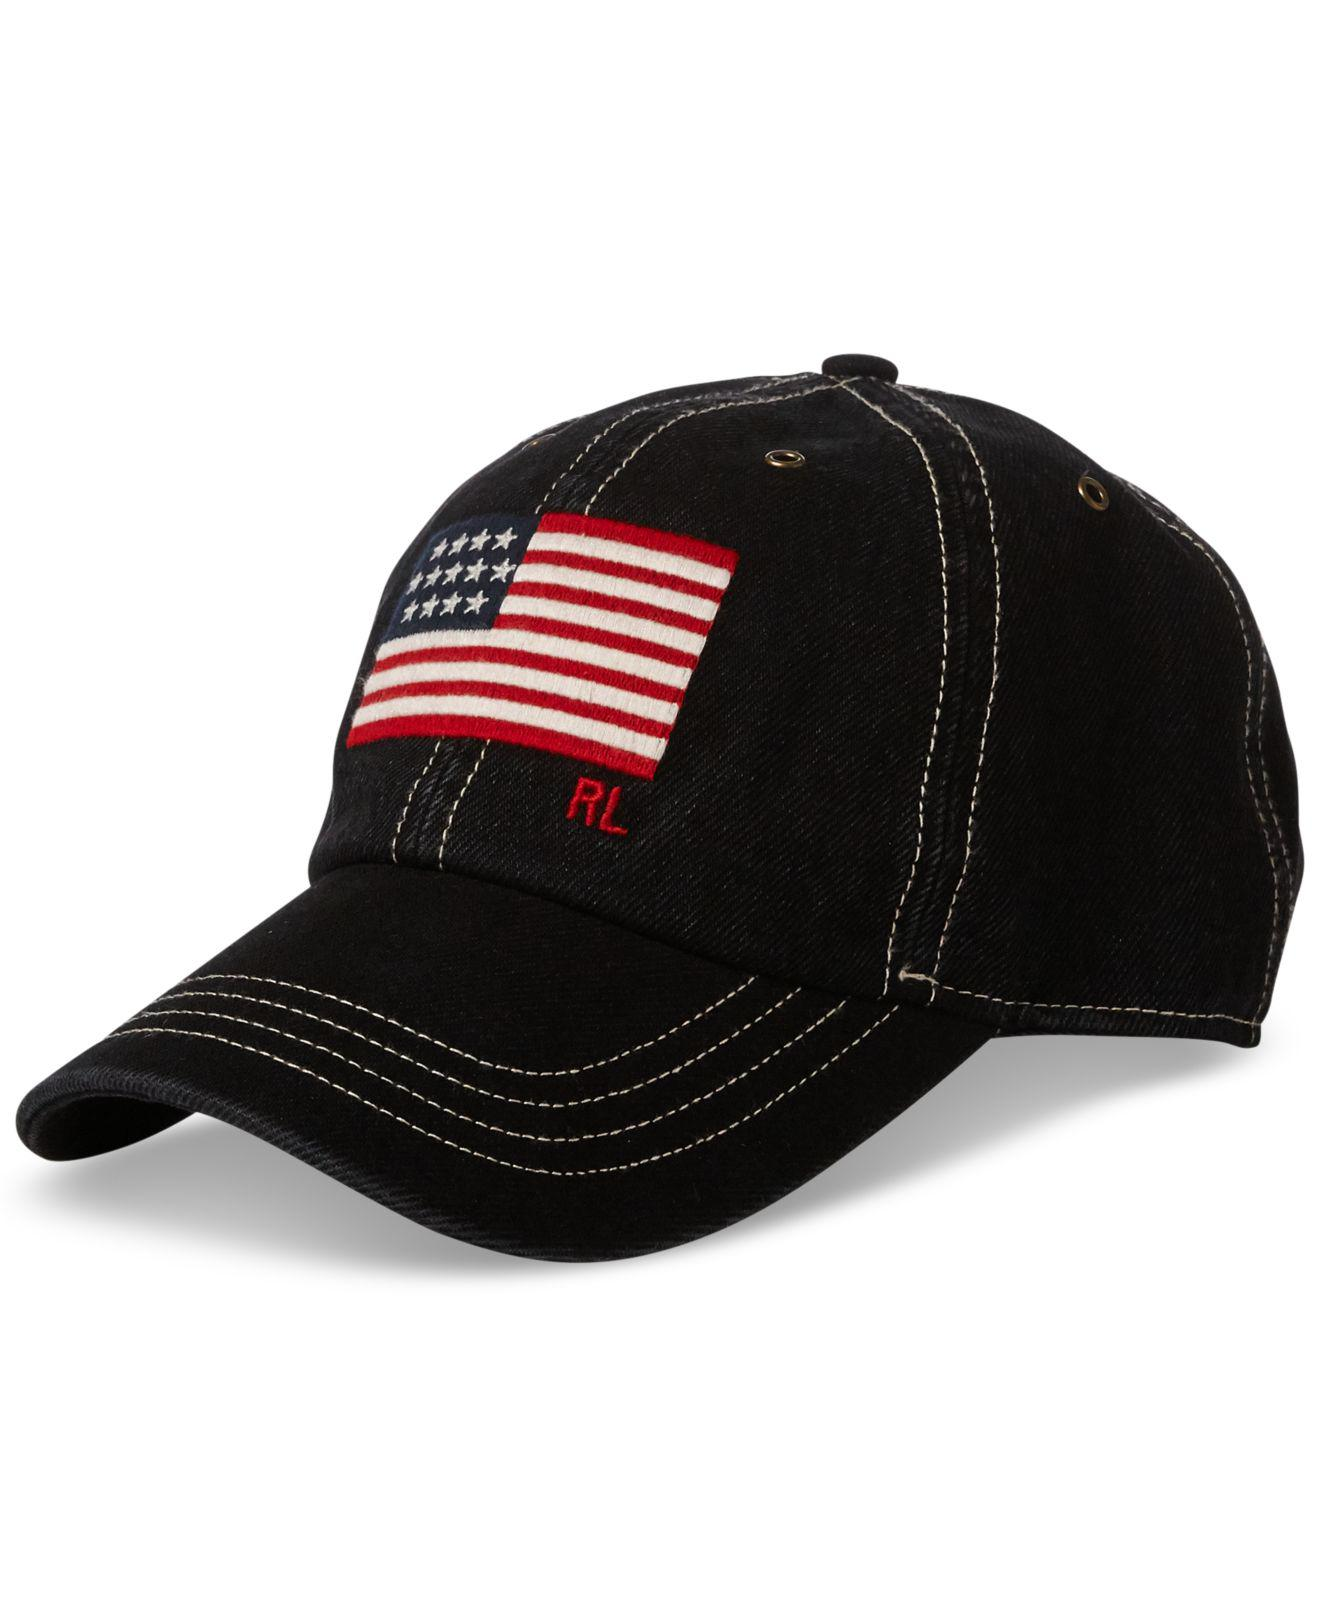 Lyst - Polo Ralph Lauren Flag Denim Baseball Cap in Black for Men ... 1333b3258cfc